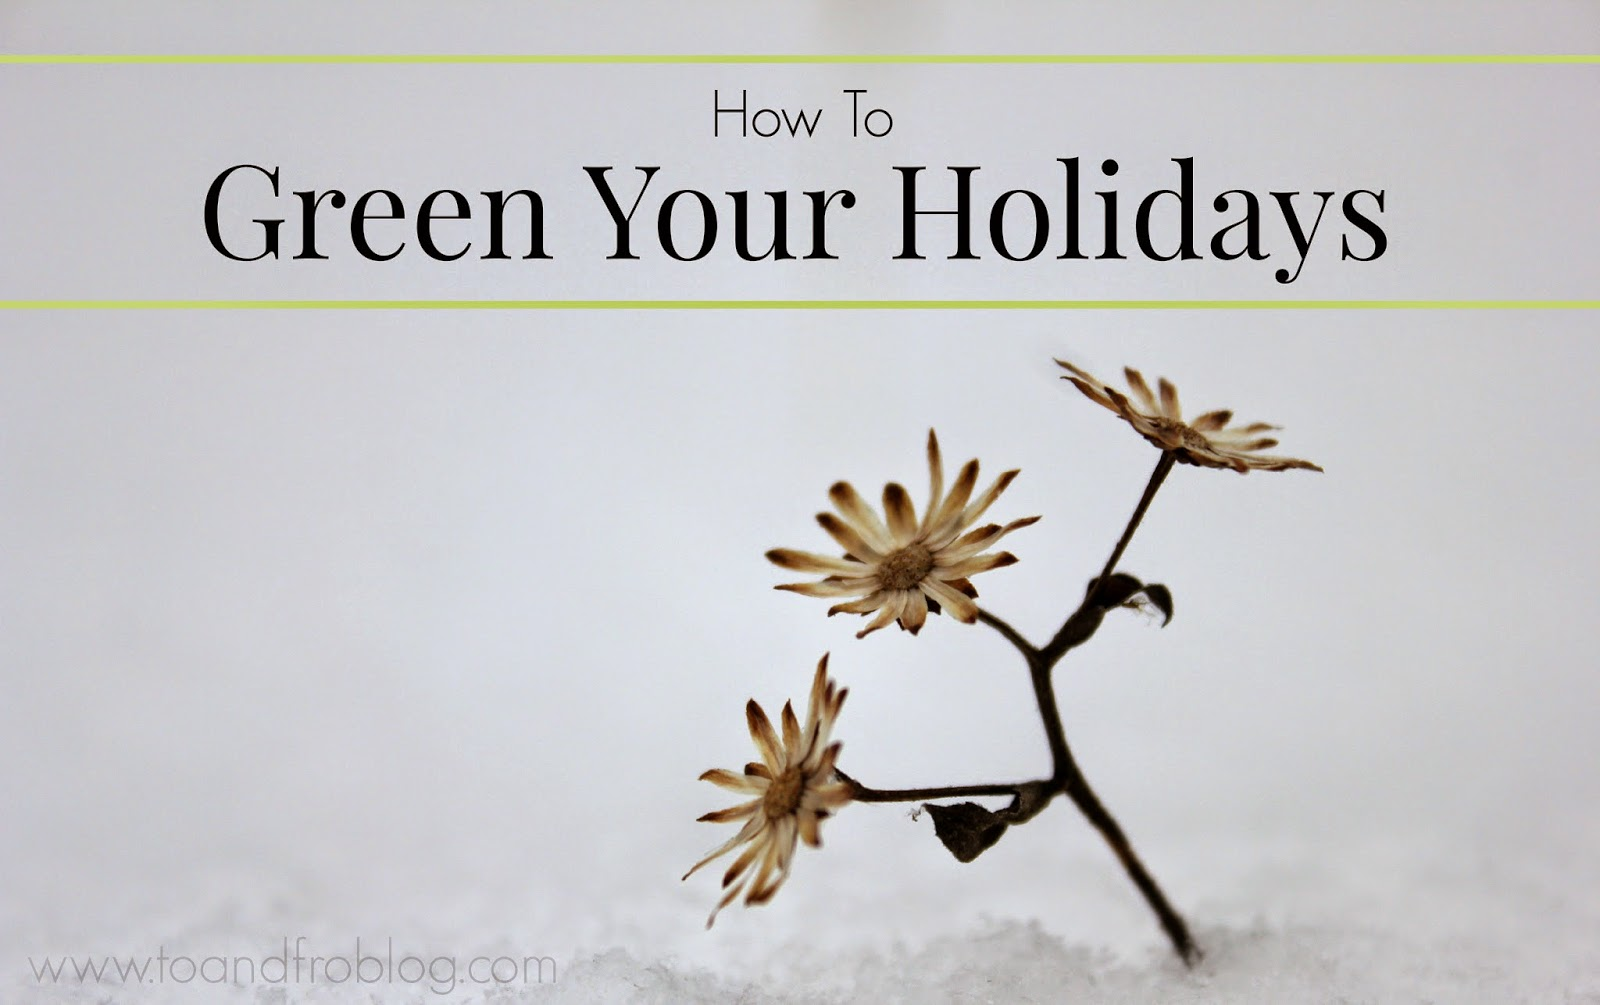 15 ways to green your holidays